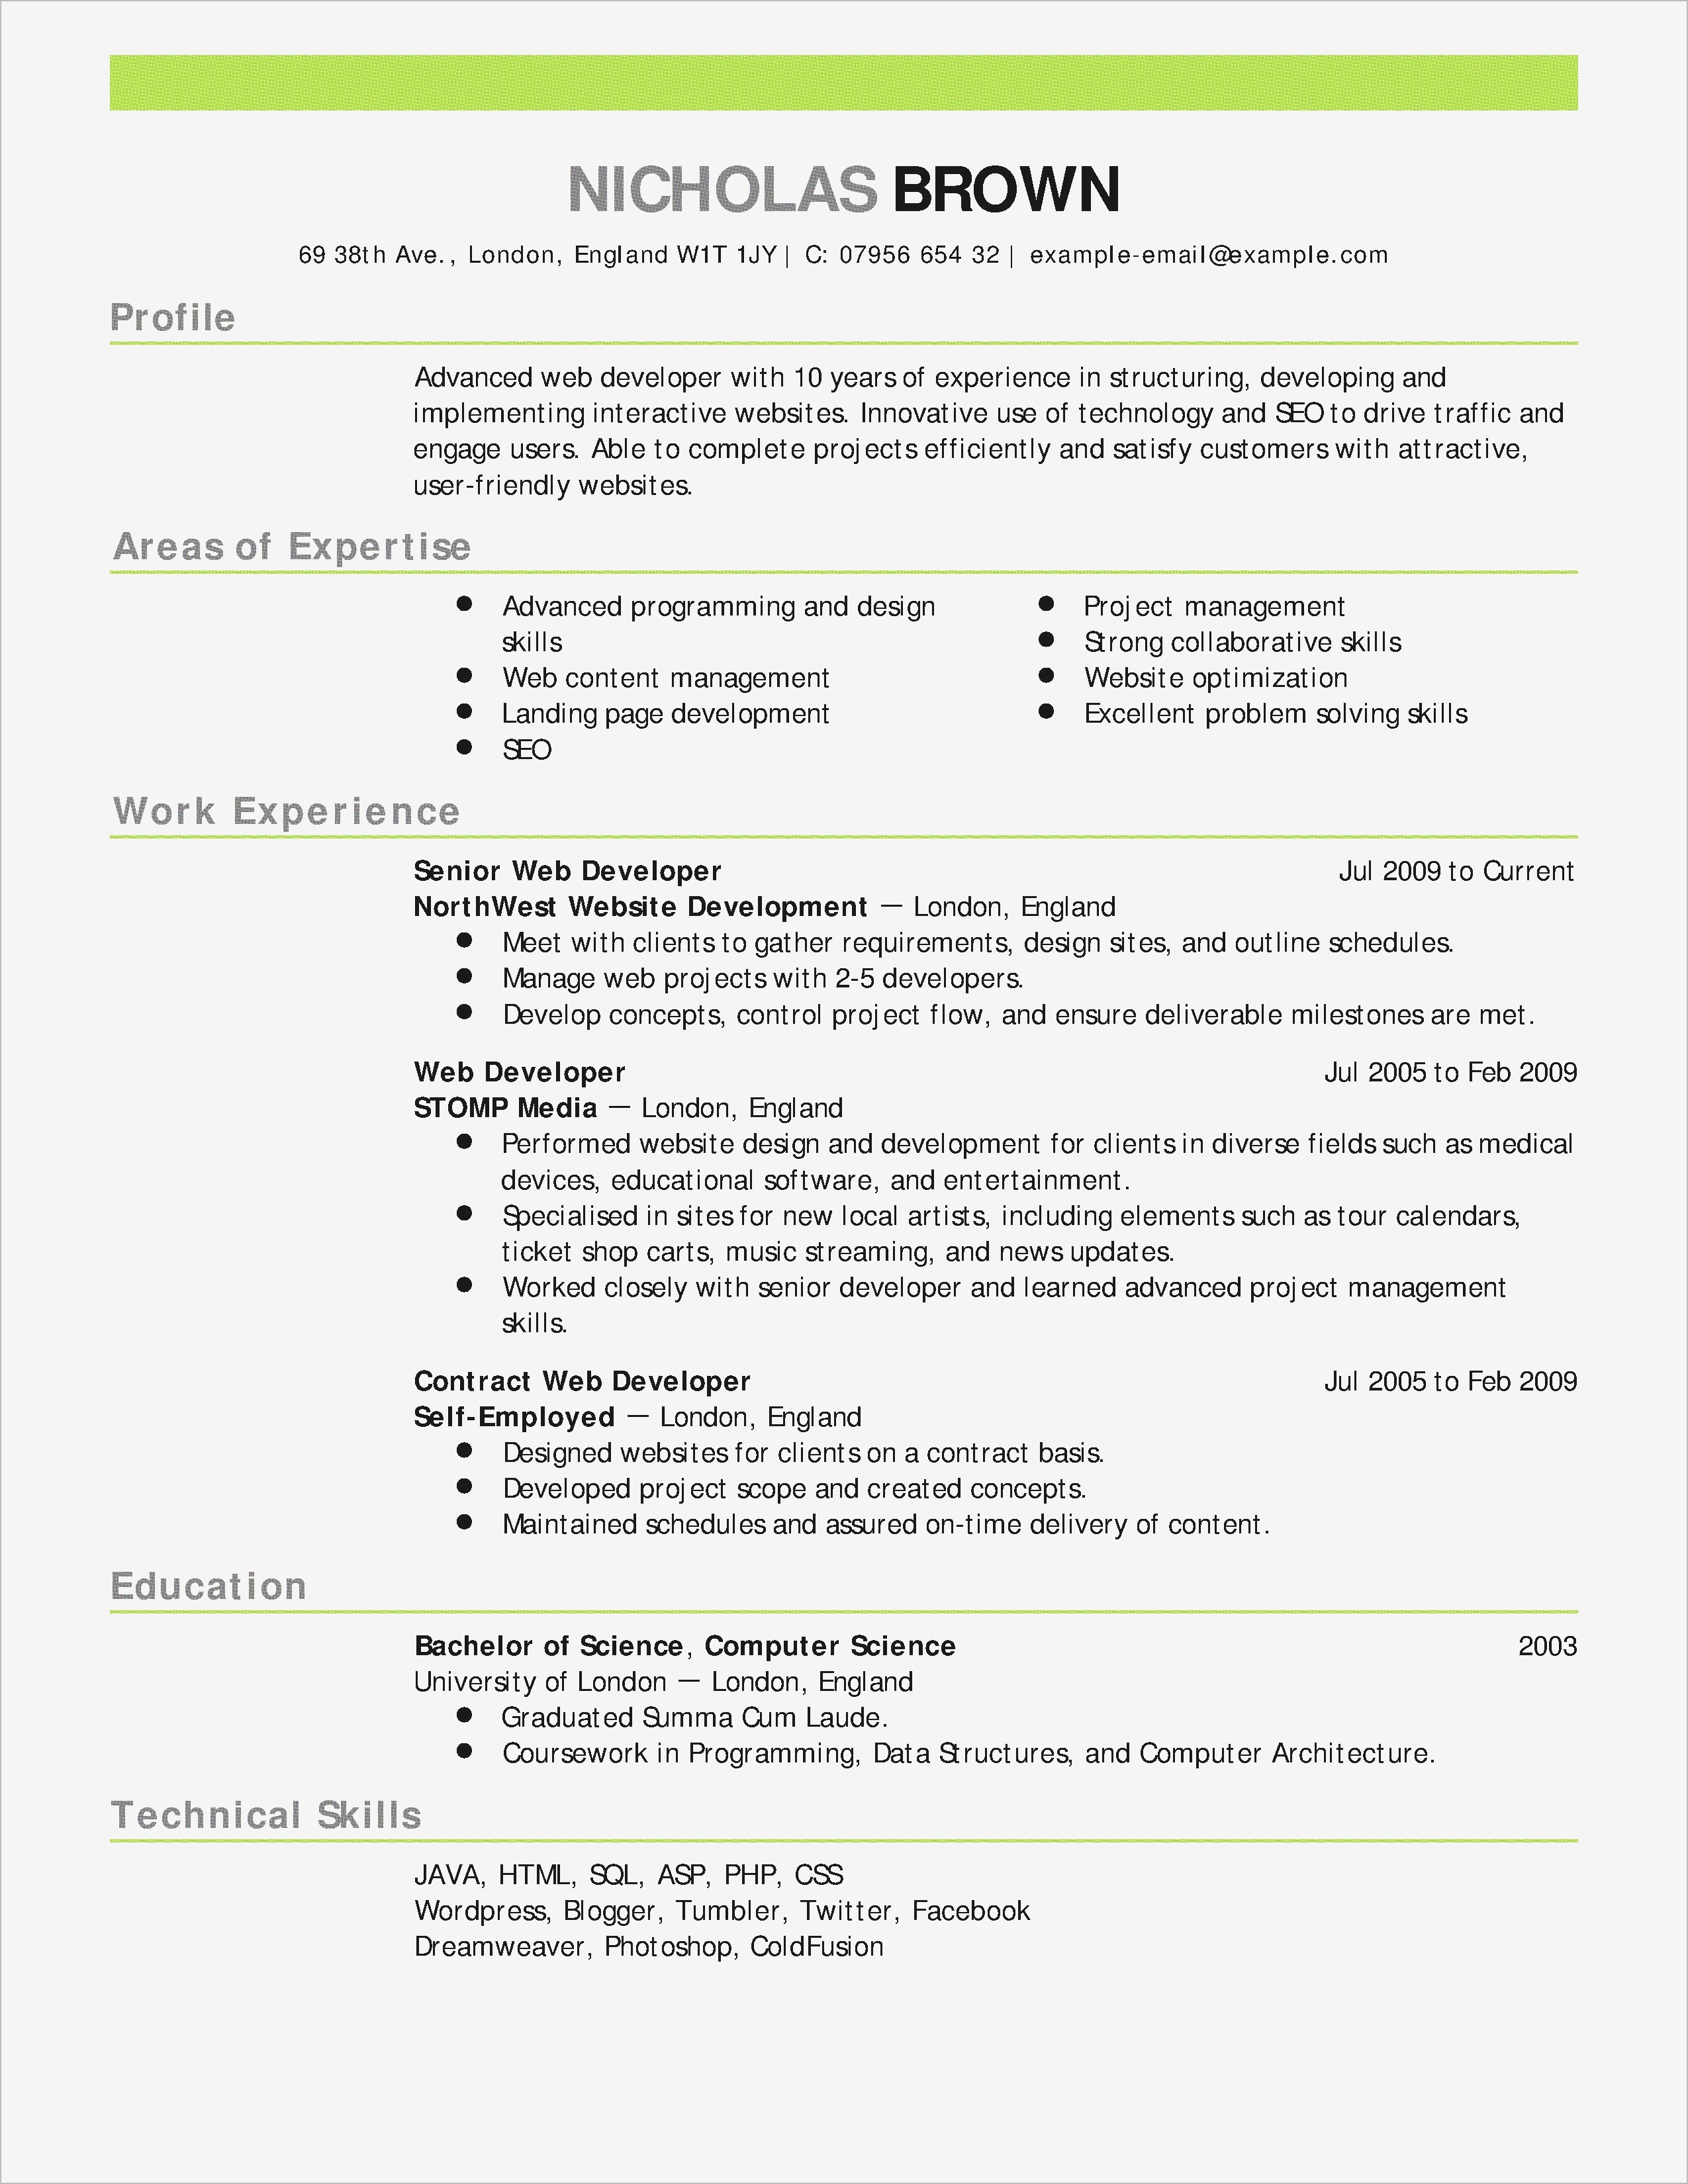 Sample Resume for Stay at Home Mom Returning to Work - 20 Elegant Stay at Home Mom Resume Examples